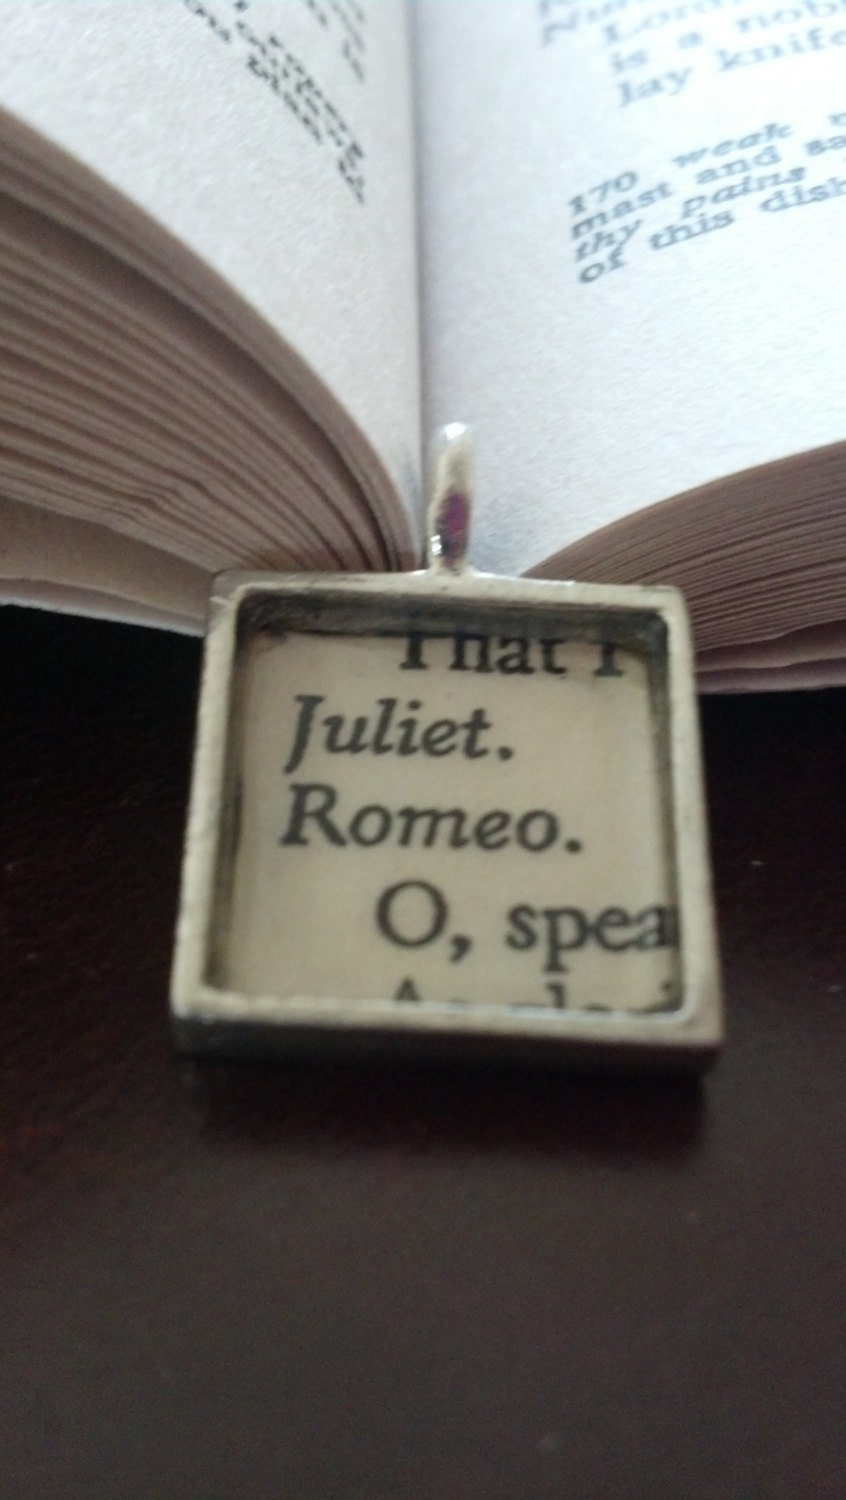 lets talk about love in william shakespeares romeo and juliet William shakespeare was a wonder with words  as we know romeo and juliet's love does indeed end in tragedy  what, drawn, and talk of peace.